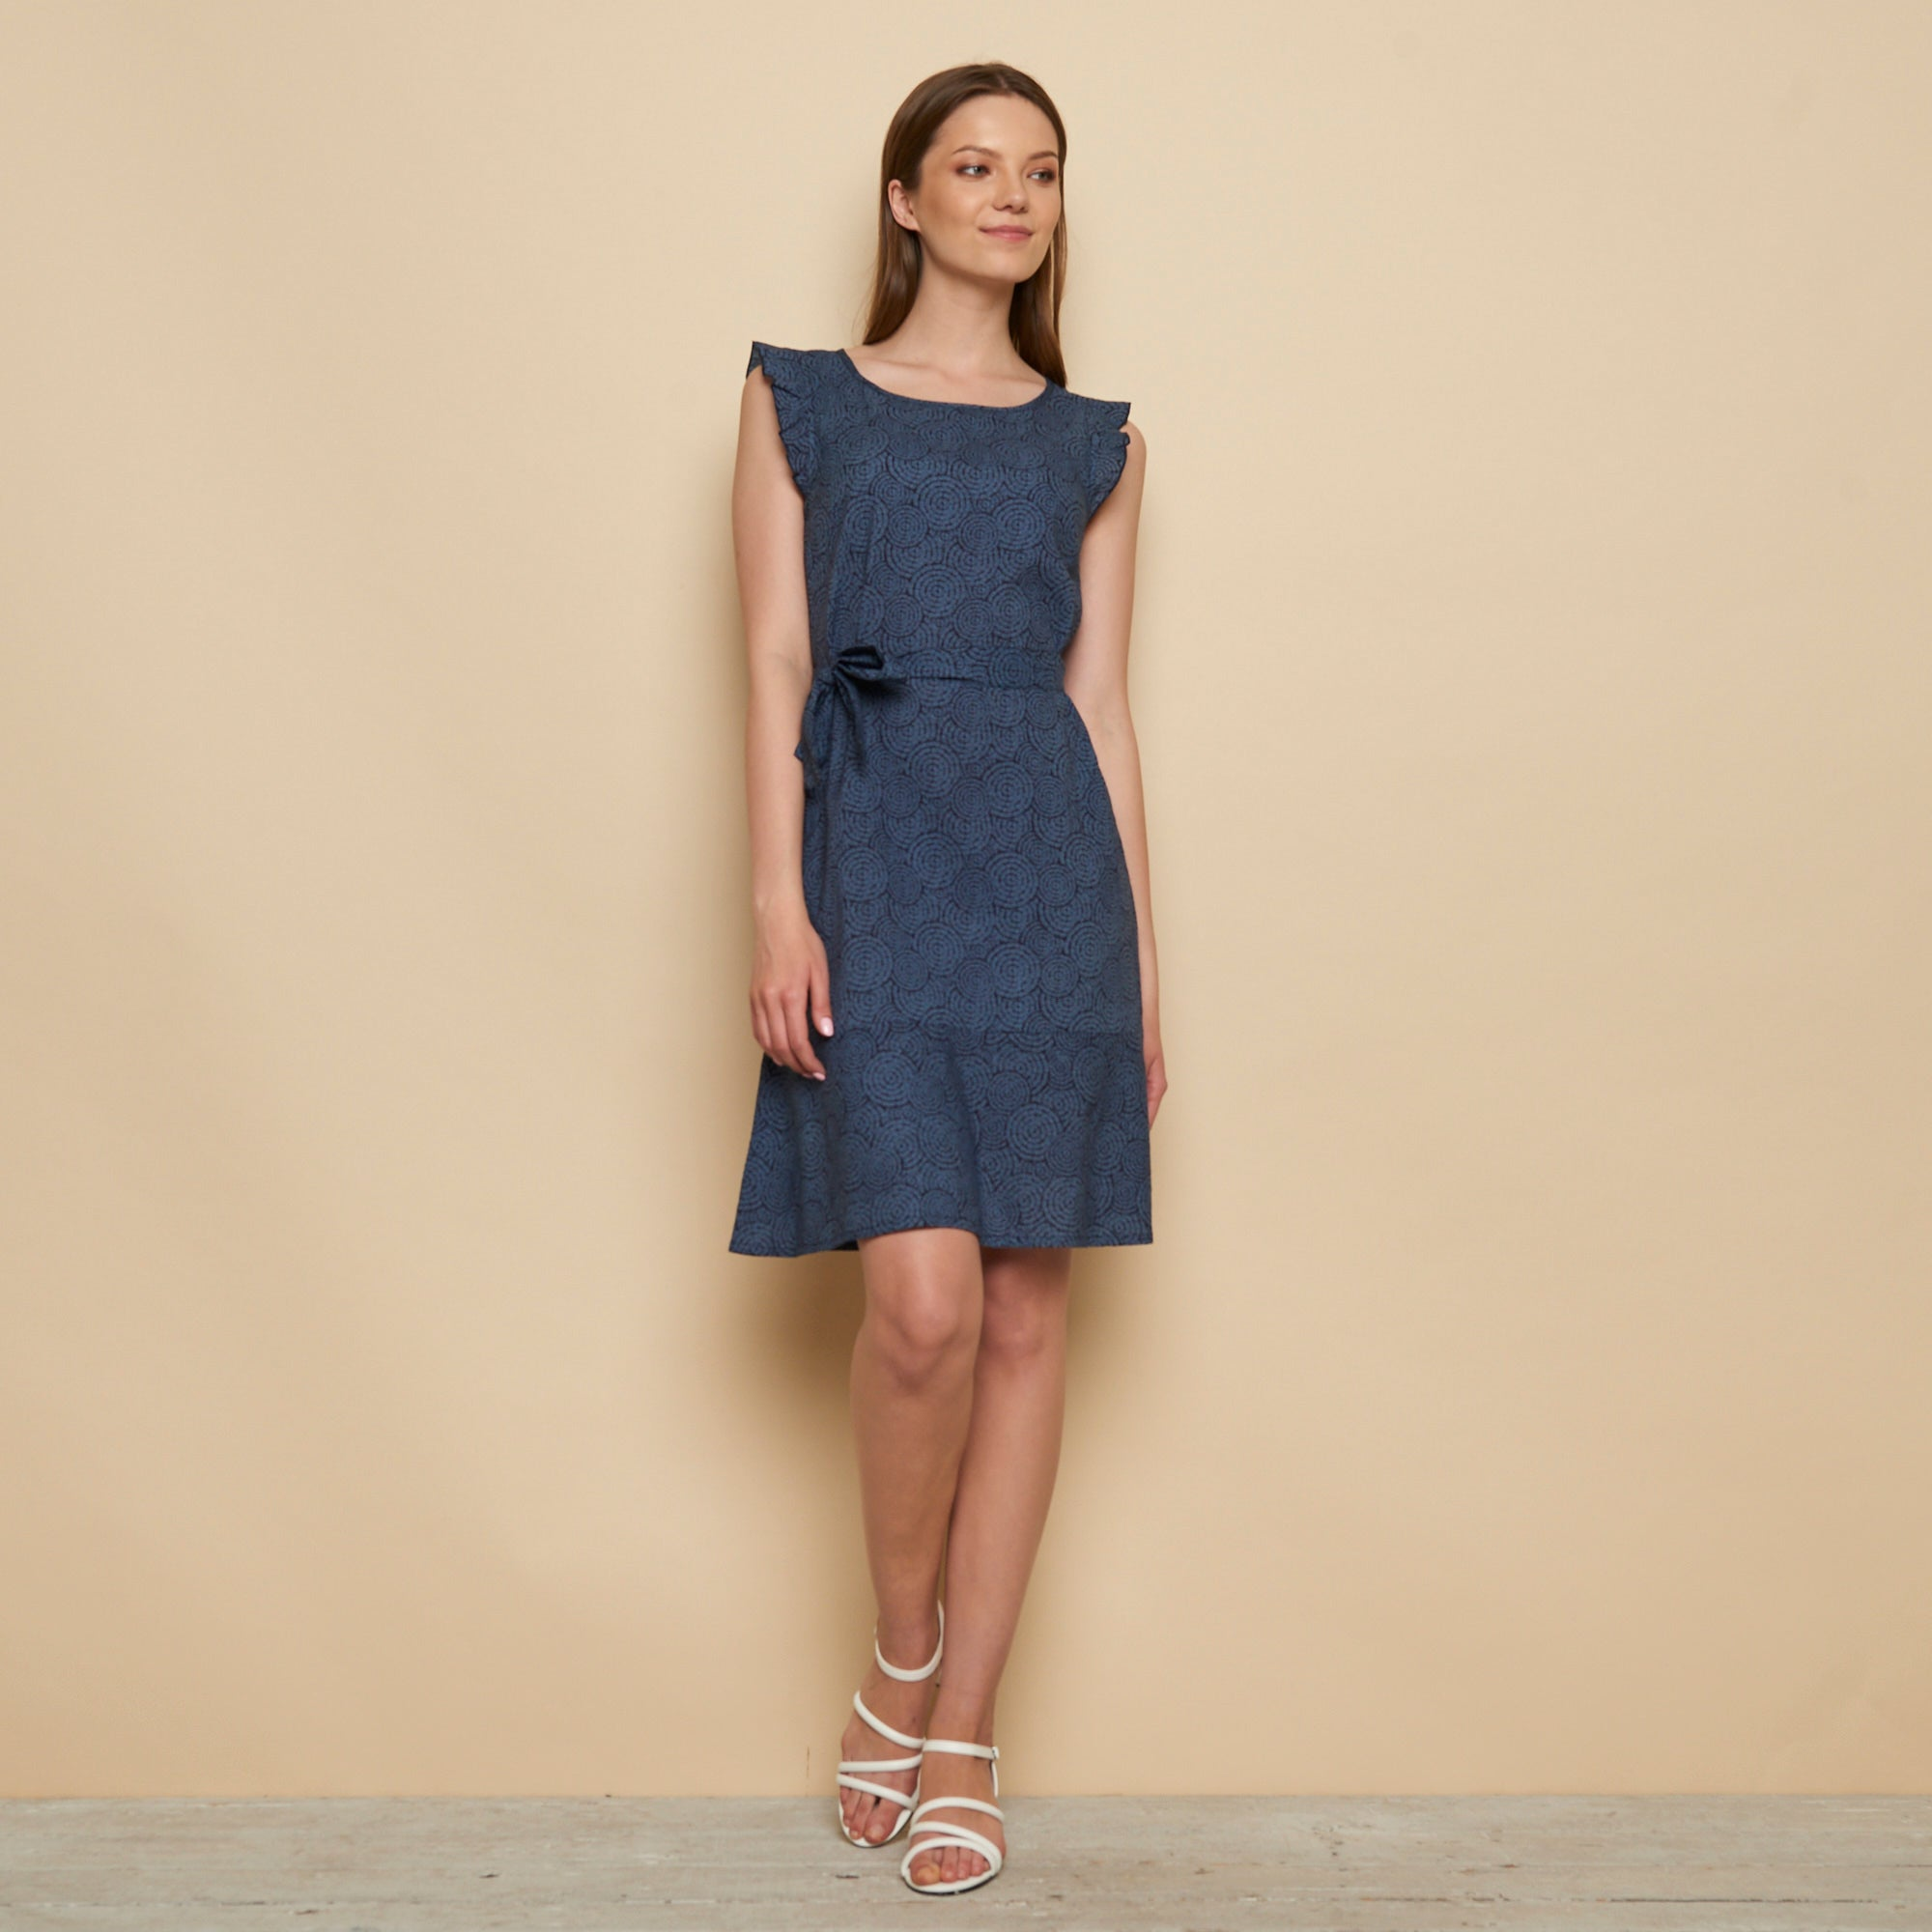 Ruffle Sleeve Dress Blue Chambray